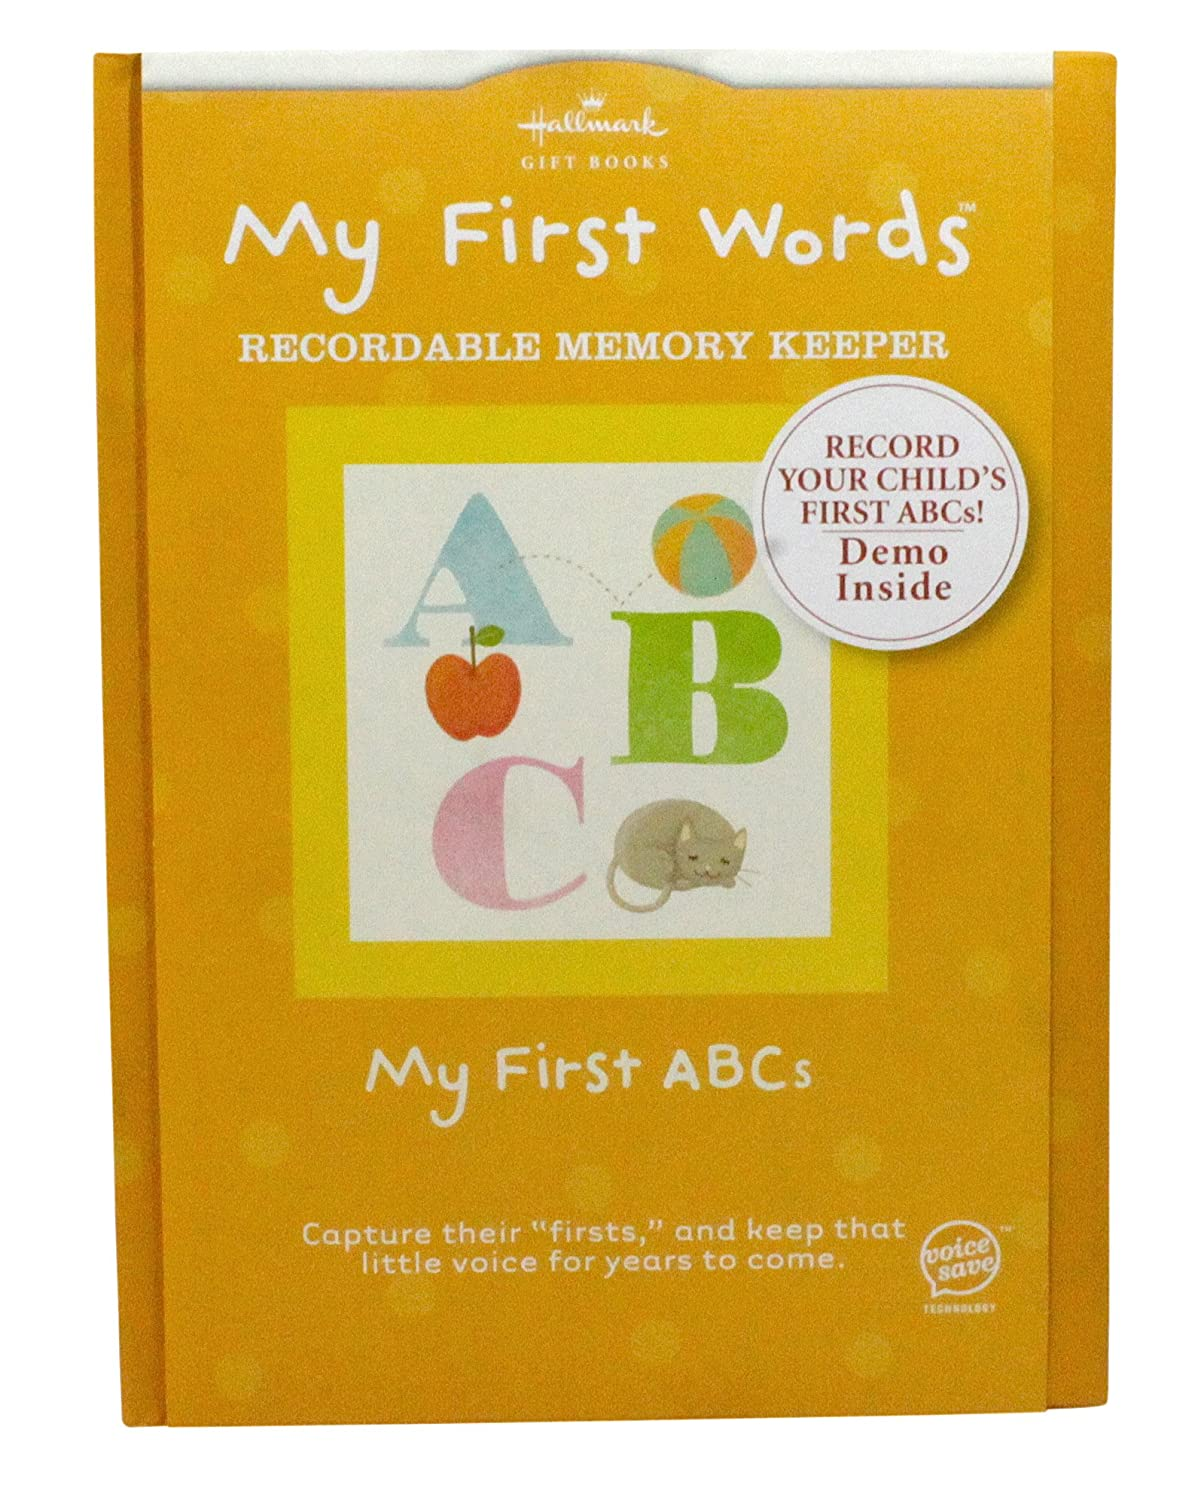 Hallmark Recordable Books DIG5802 My First ABC's Recordable Memory Keeper